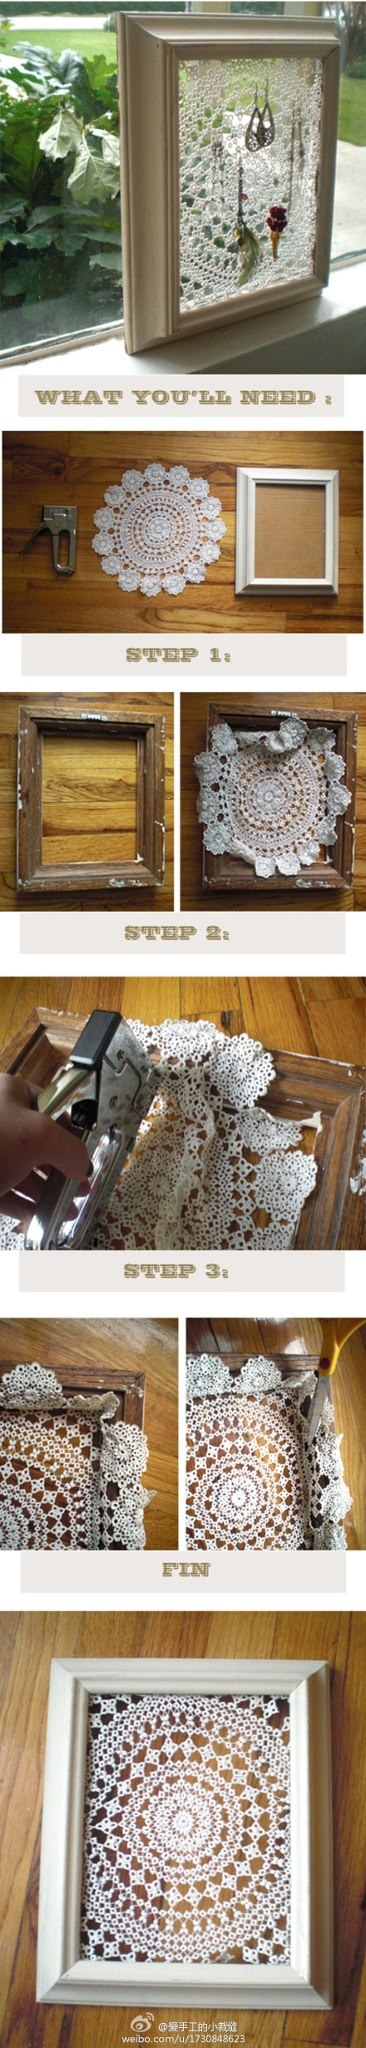 re-purposed lace doilies/lace & frame